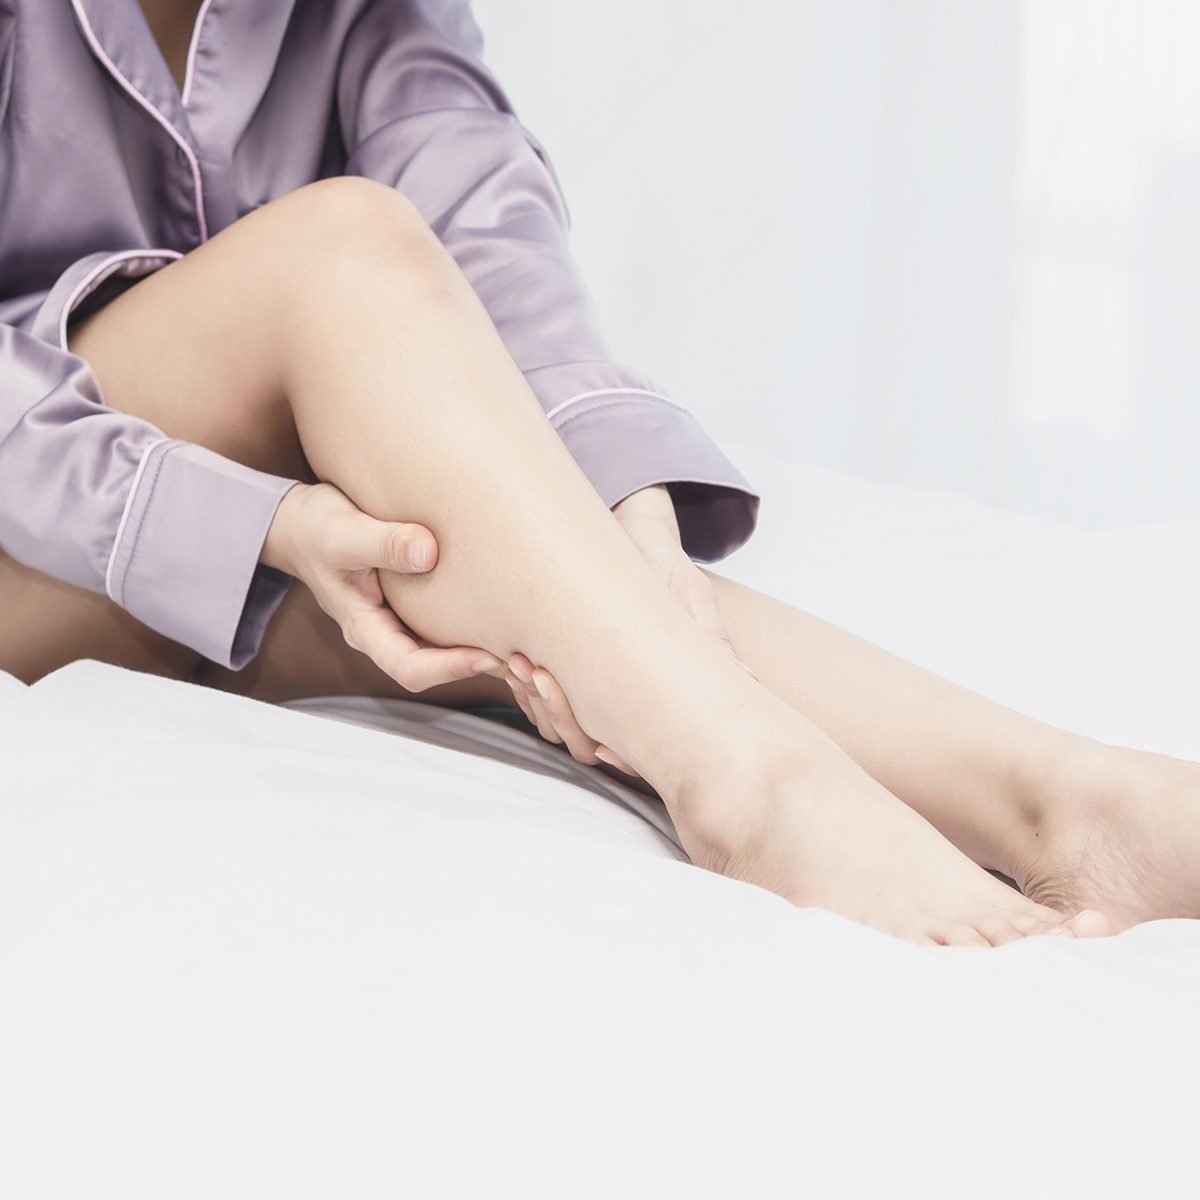 women lag pain on bed in bed room in the morning.color tone